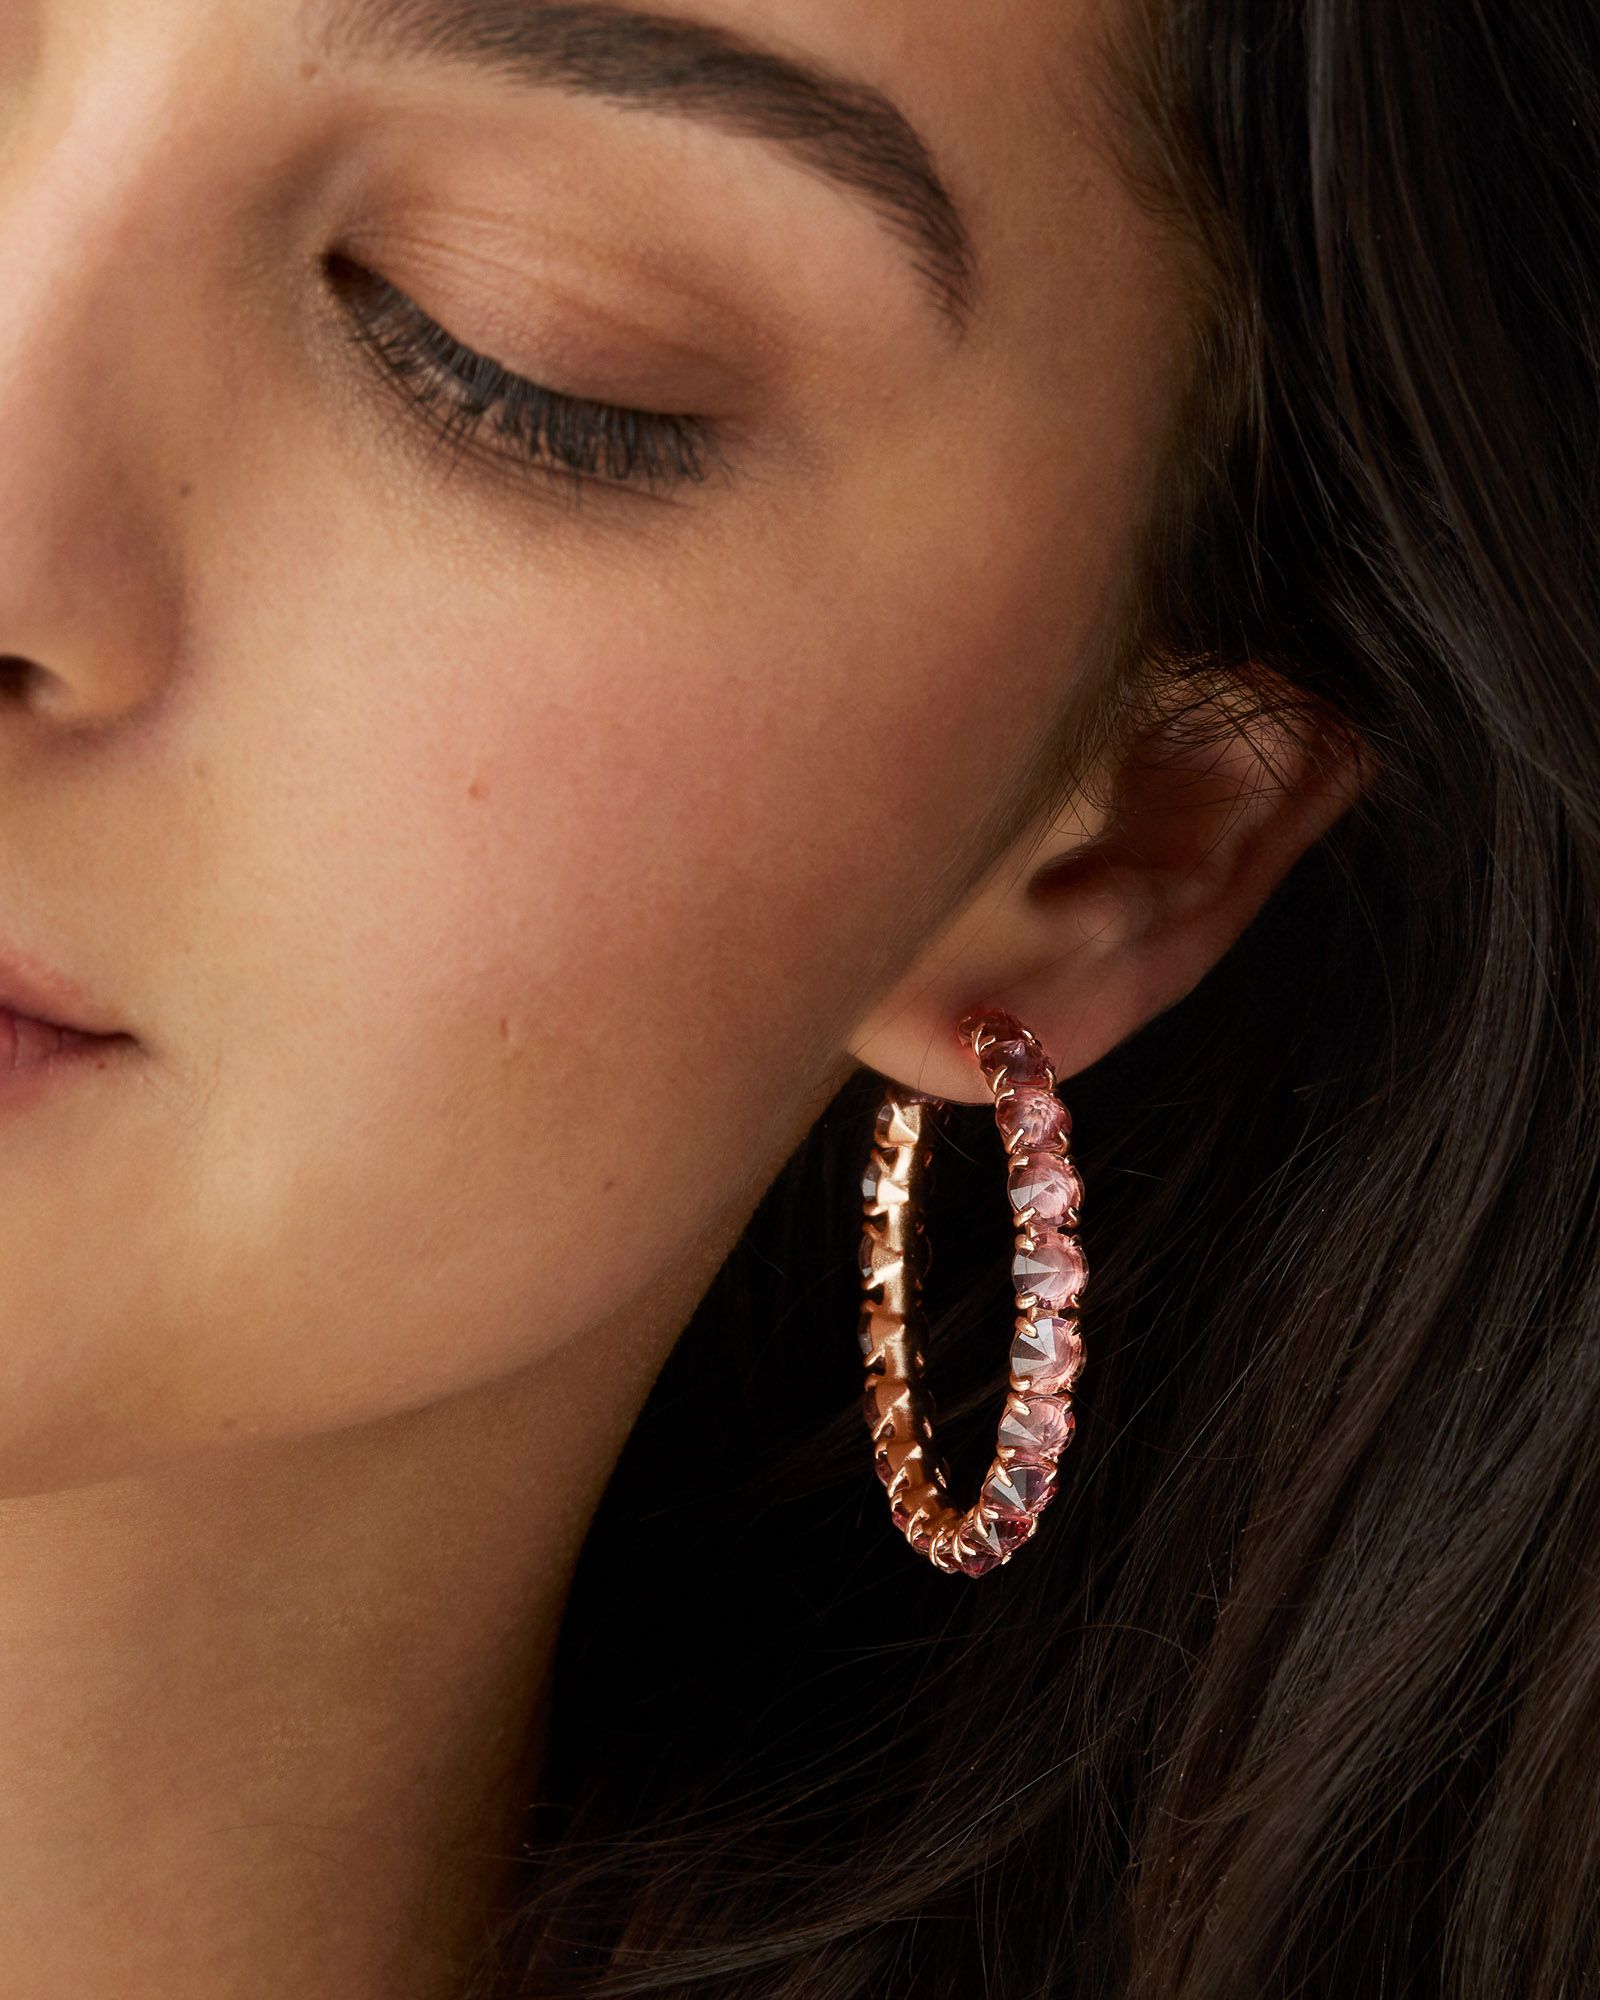 Jolie Rose Gold Hoop Earrings in Peach Ombre